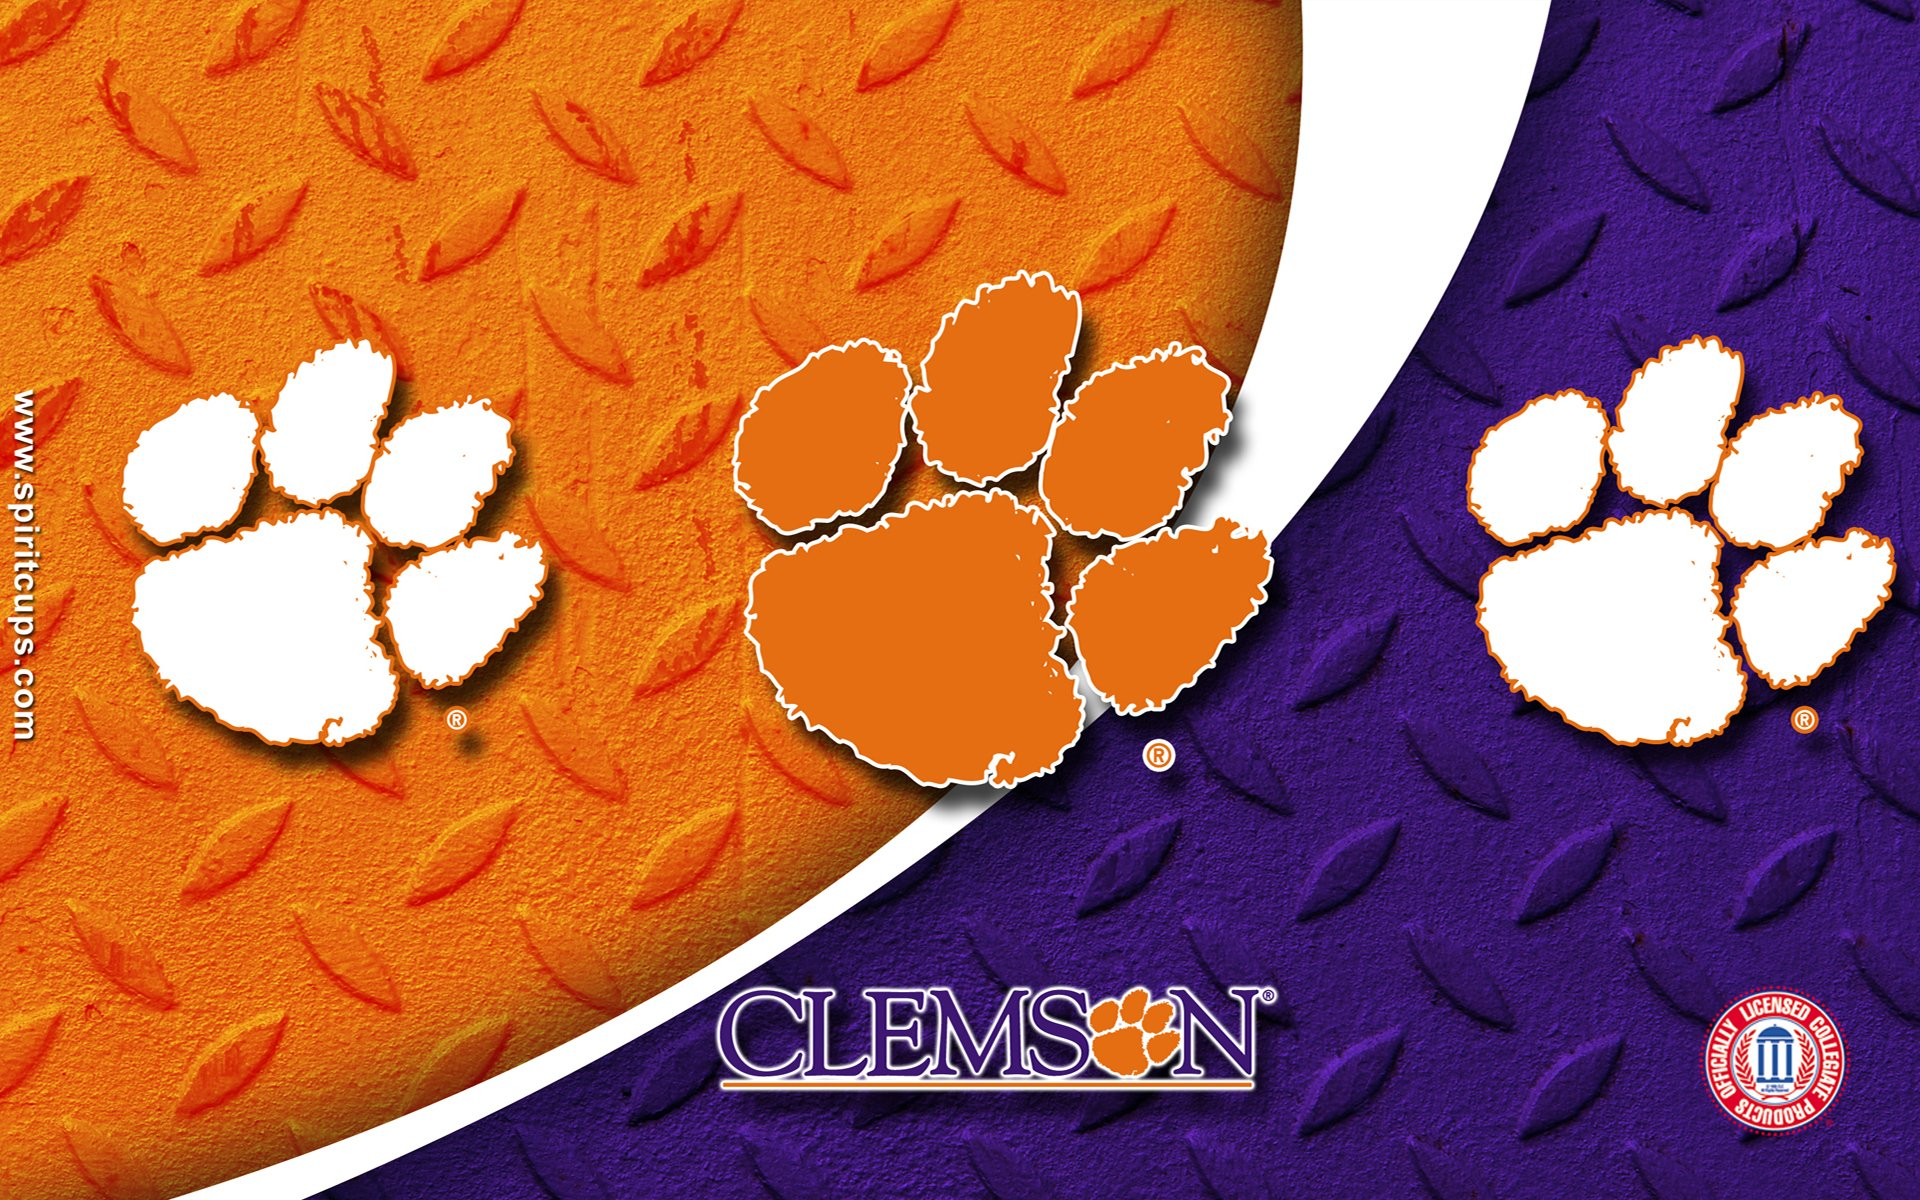 clemson football wallpapers hd-#8